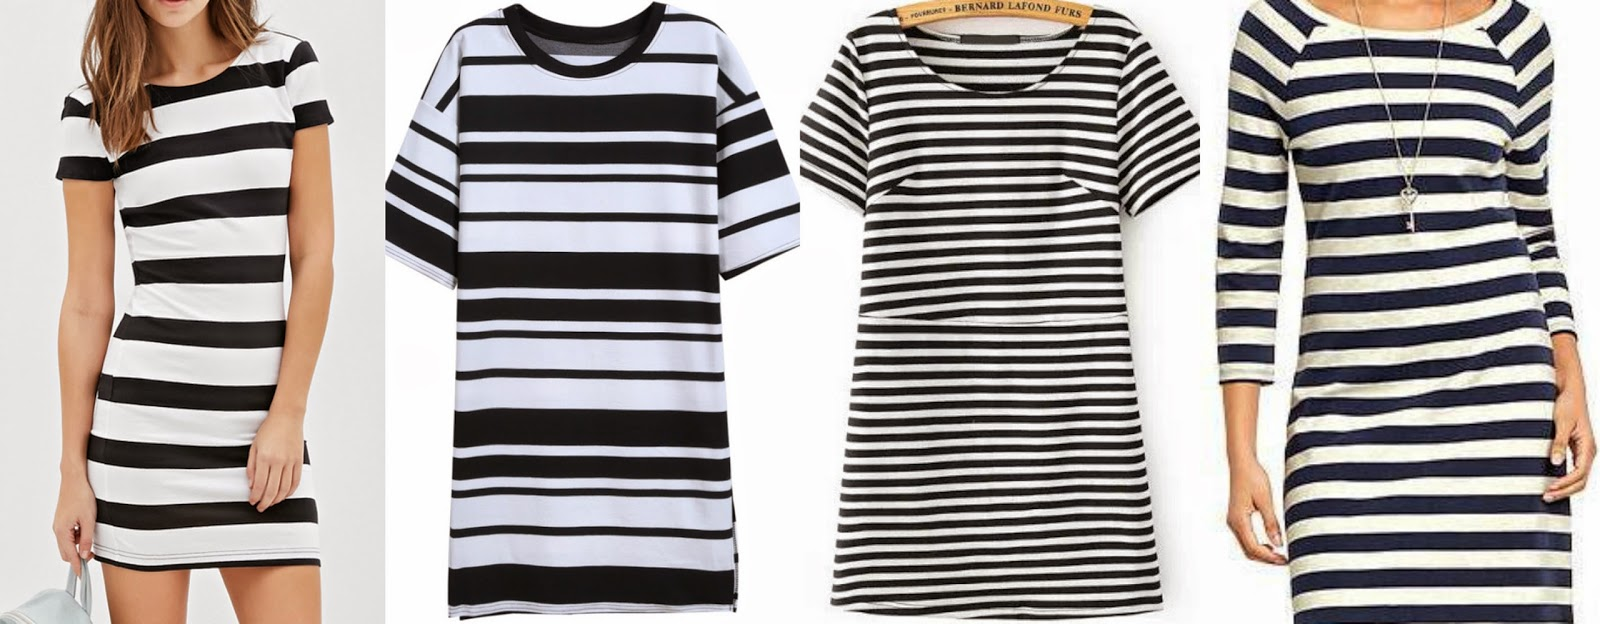 black and white striped dress options